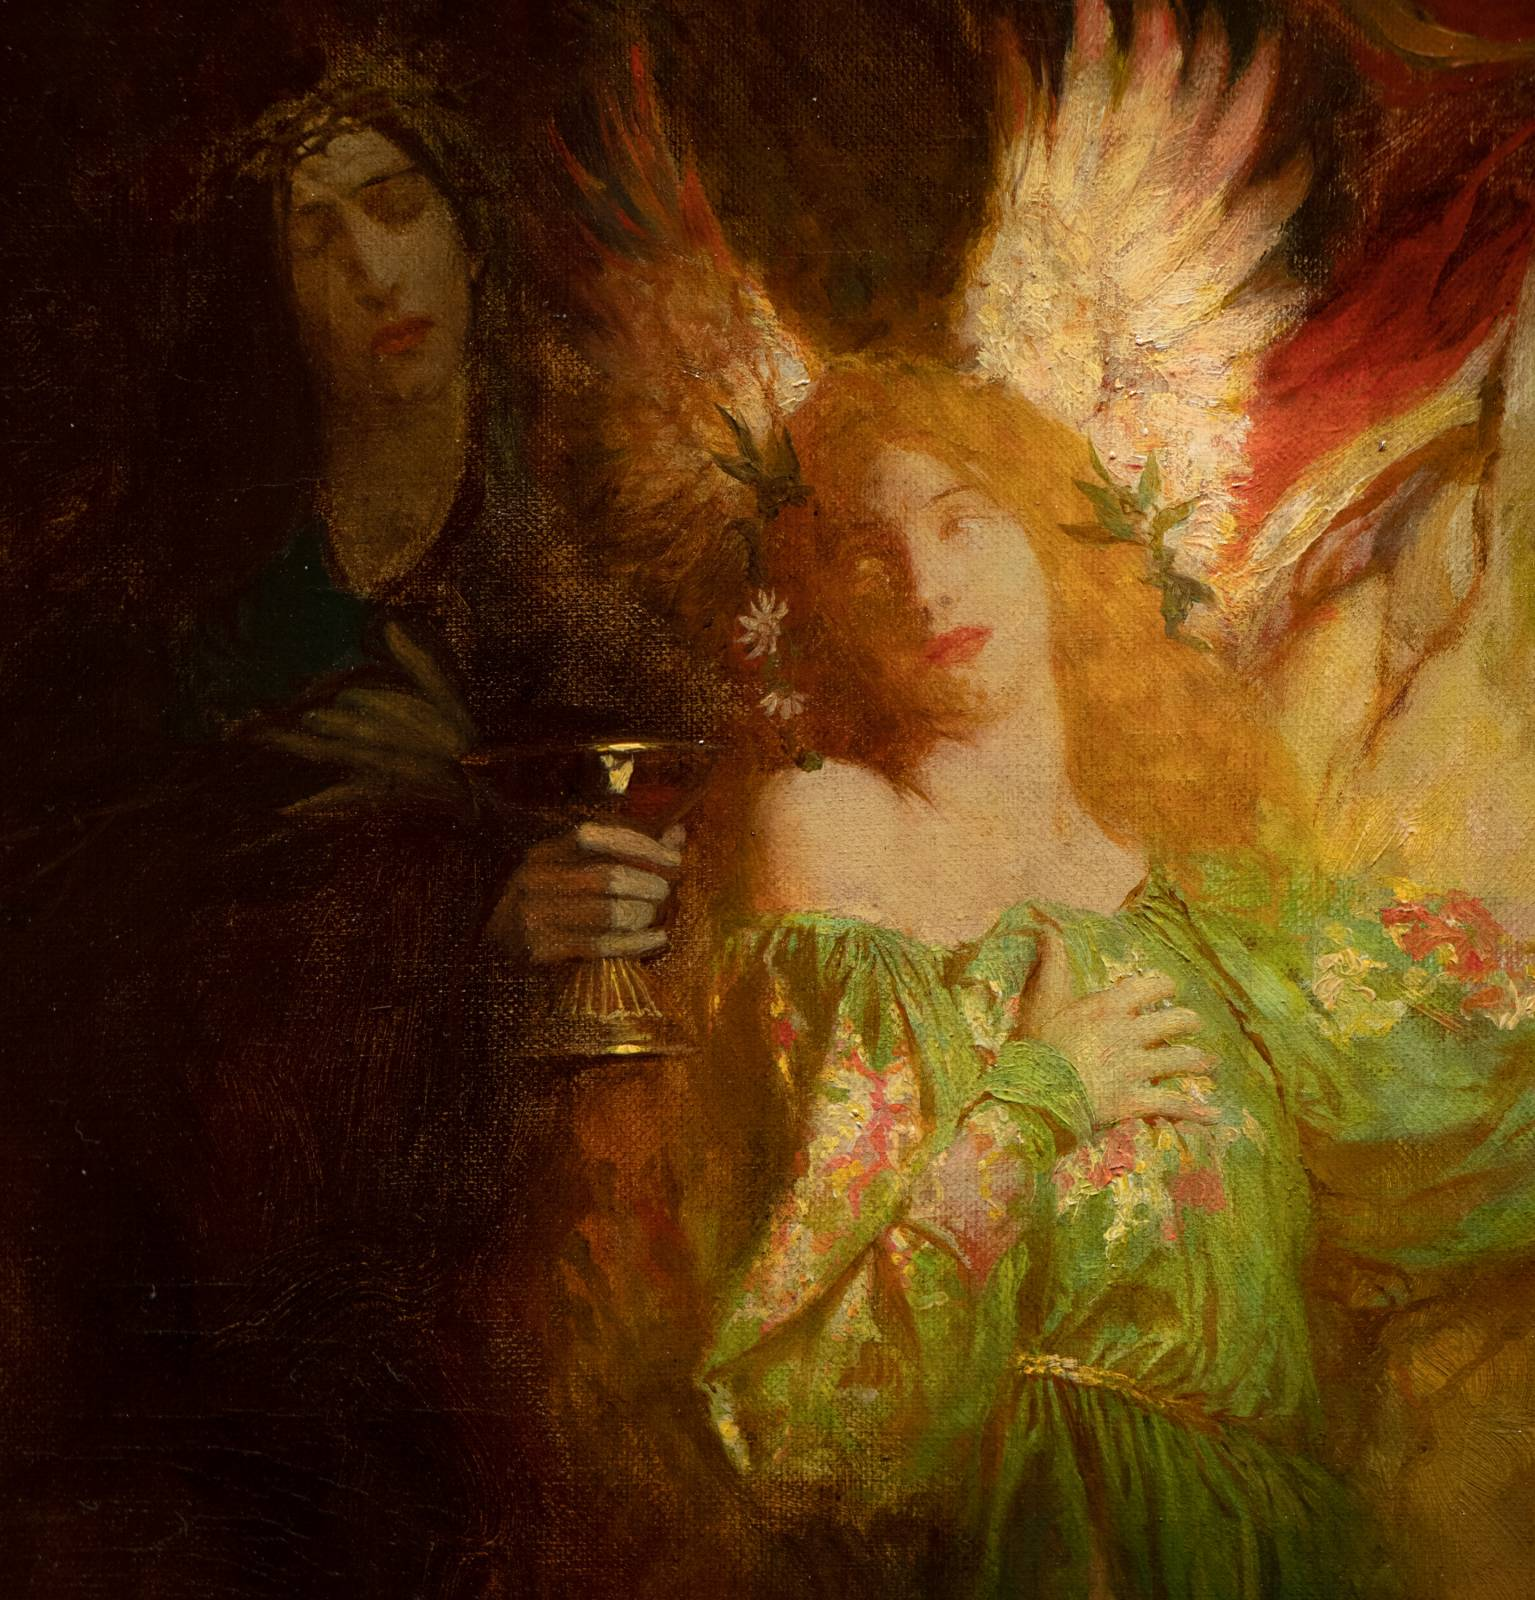 The Travels of the Soul by Howard Pyle